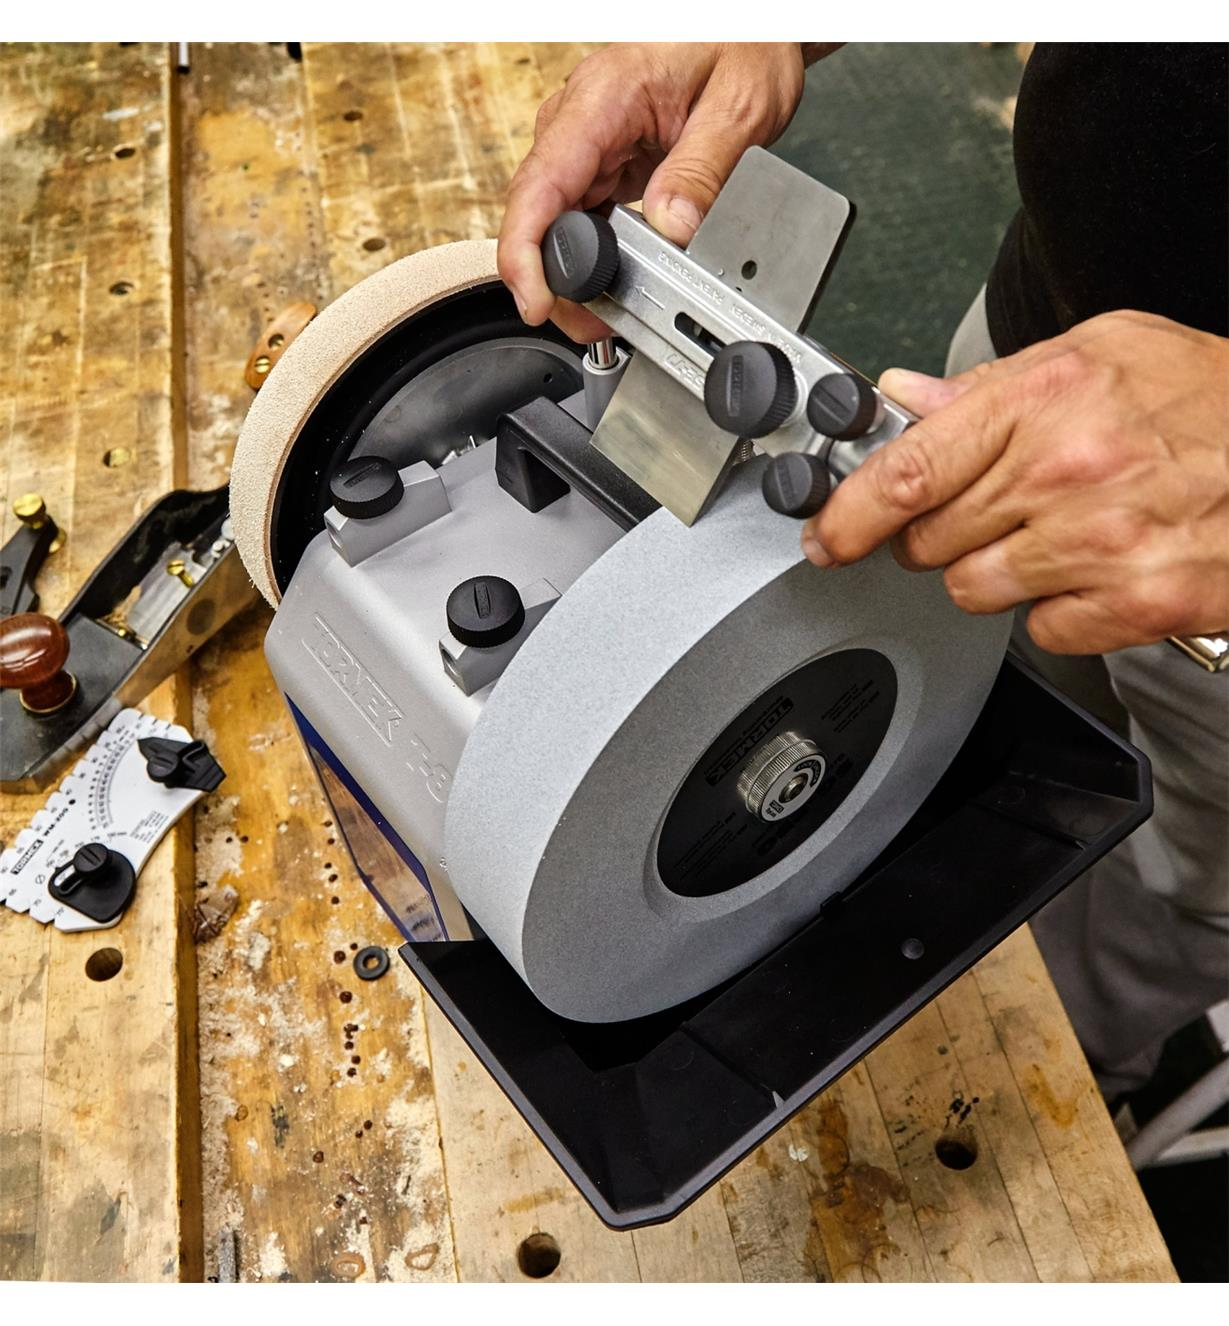 Set in a square-edge jig, a plane blade is sharpened on a Tormek T-8 sharpening machine